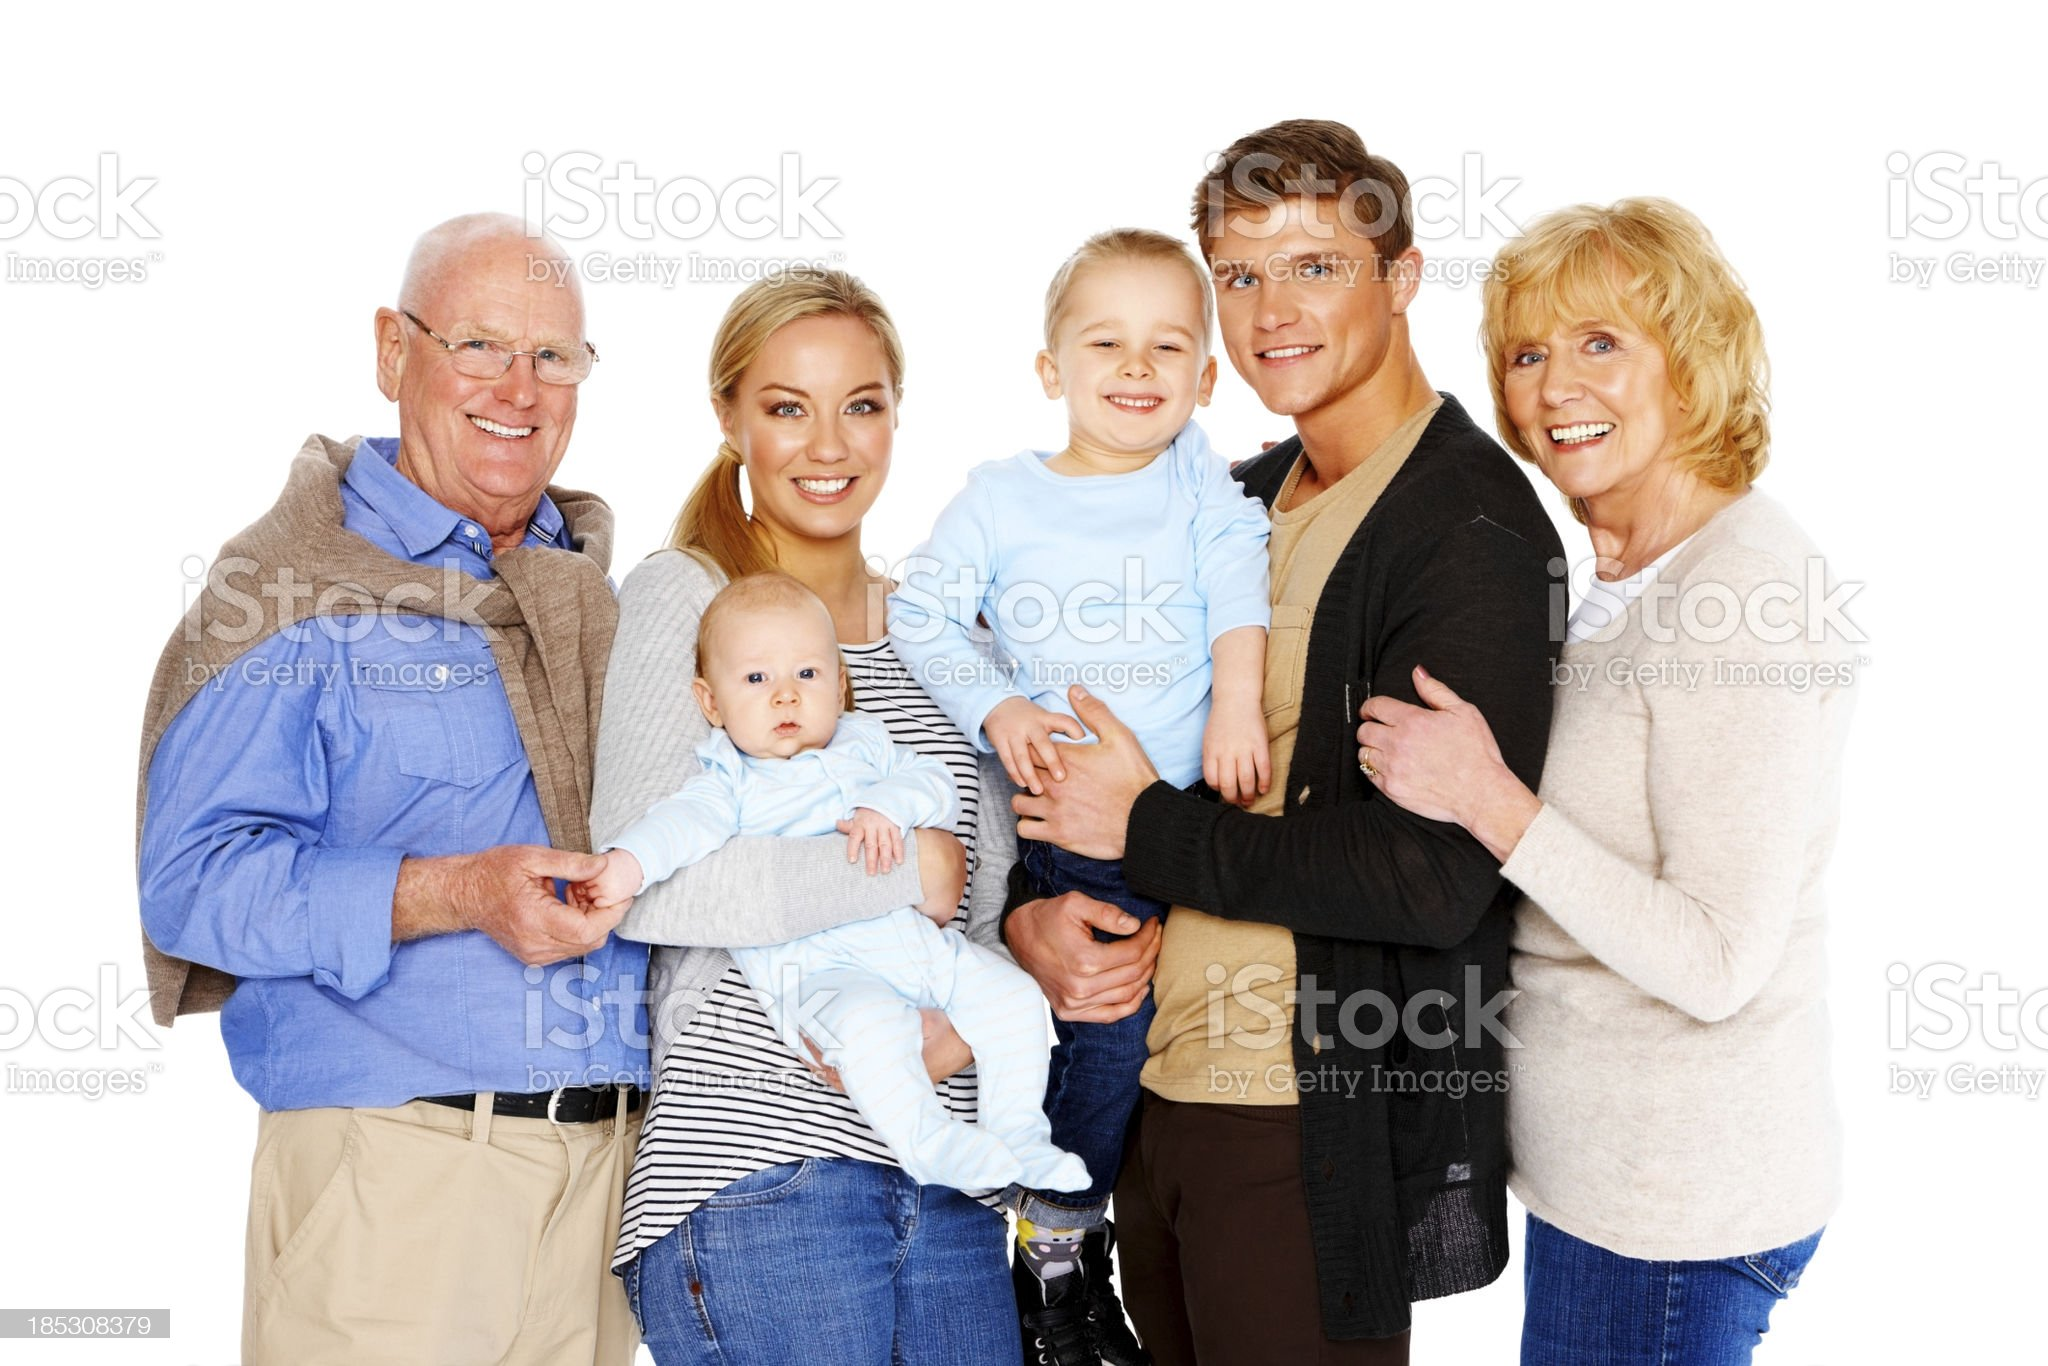 Smiling happy family isolated on white royalty-free stock photo